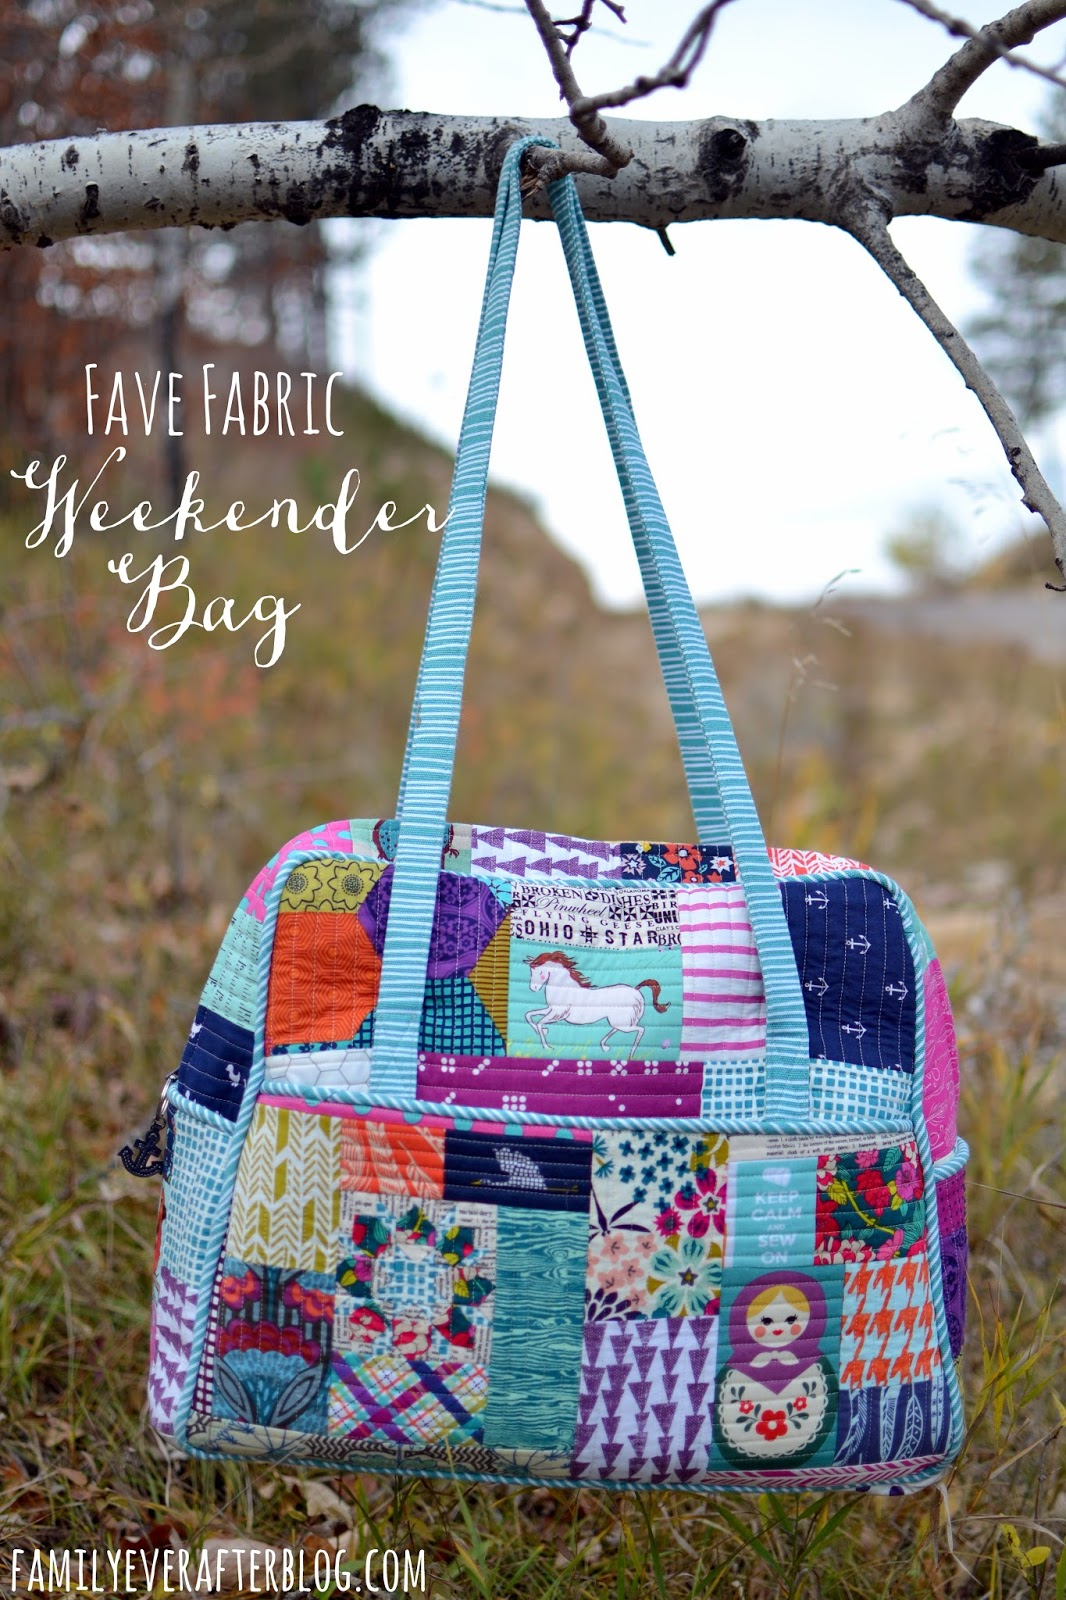 My Fave Fabric Quilted Weekender Bag